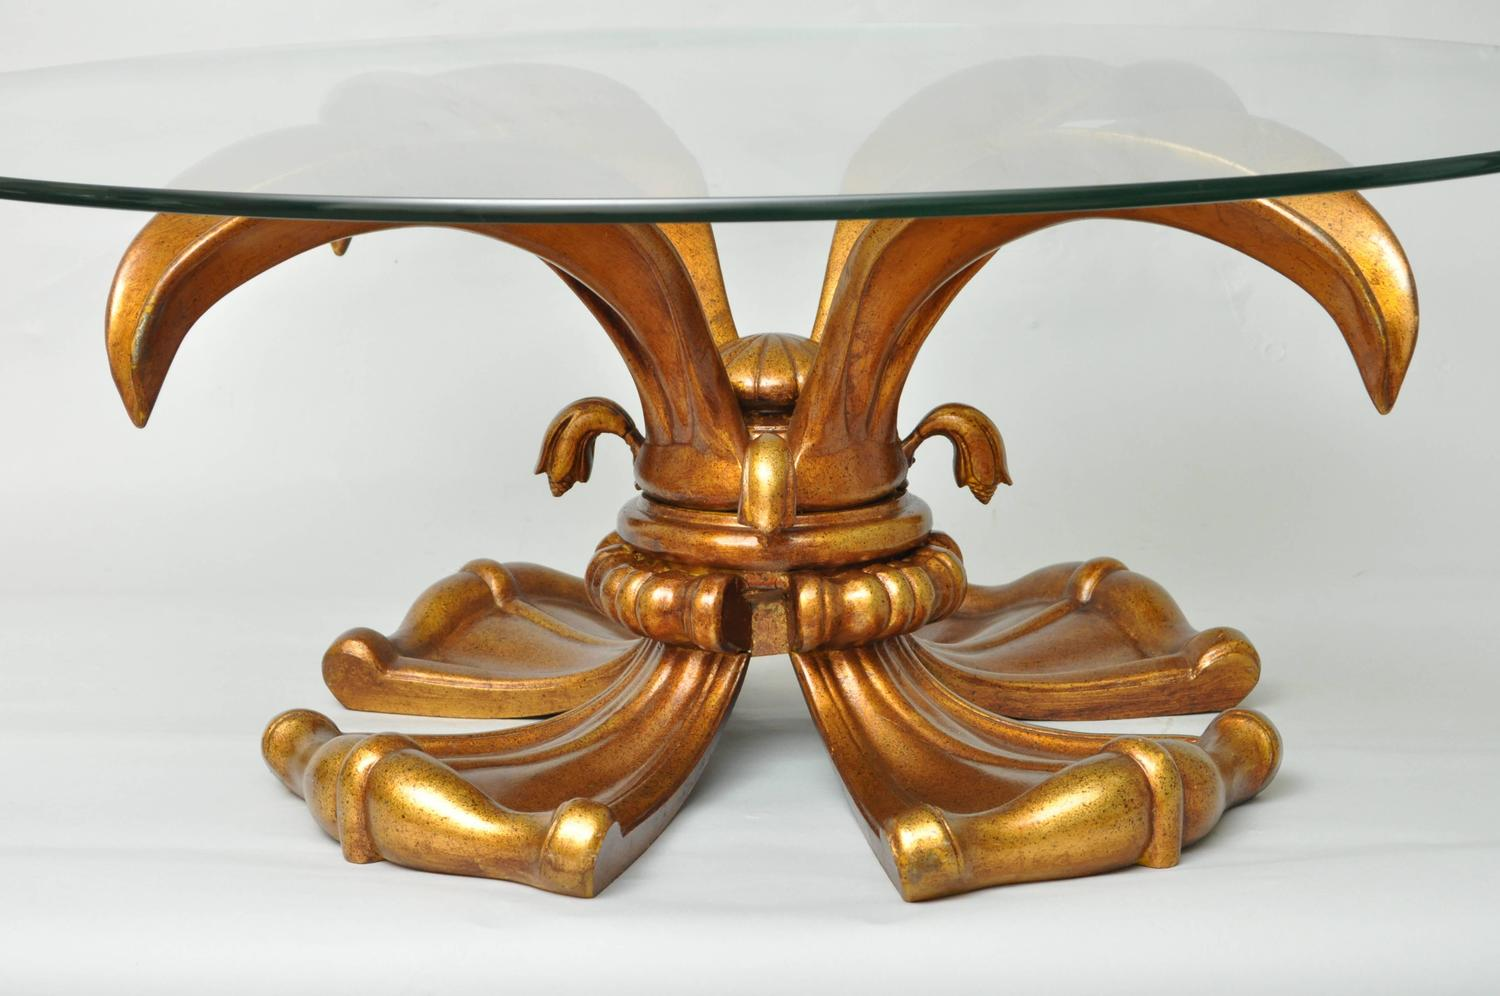 Vintage Hollywood Regency Gold Lotus Lily Round Coffee Table For Sale At 1stdibs